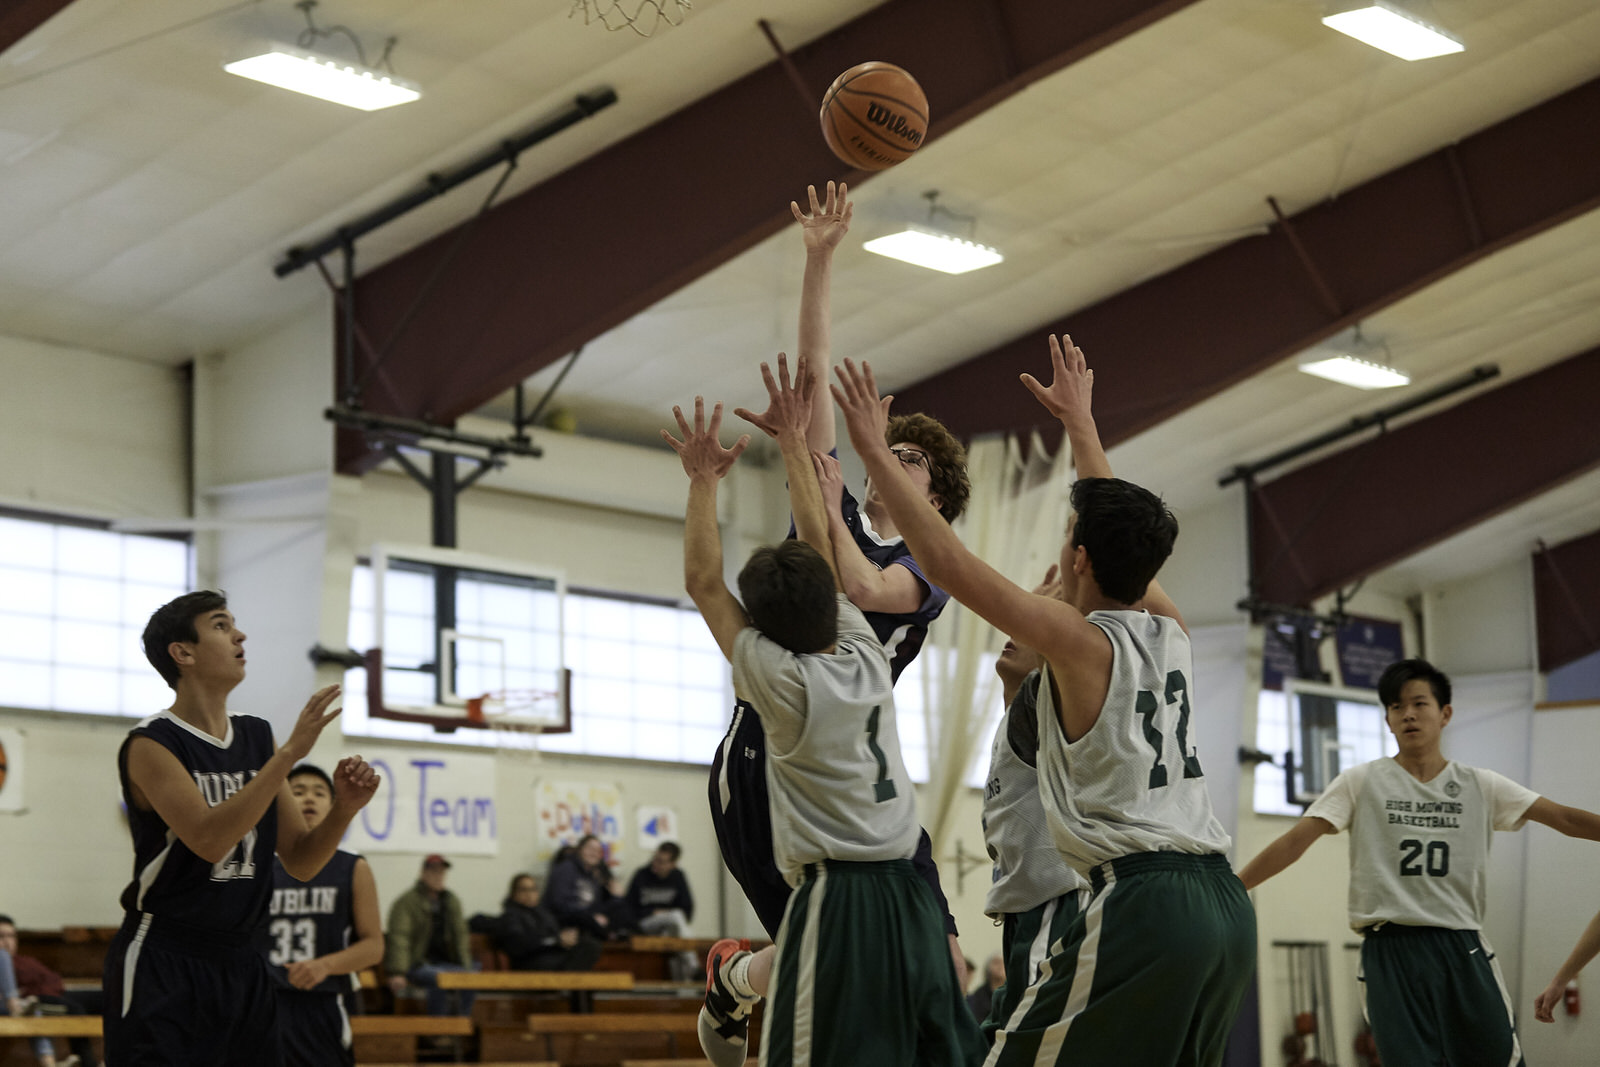 Dublin JV Boys Basketball vs High Mowing School - Jan 26 2019 - 0191.jpg